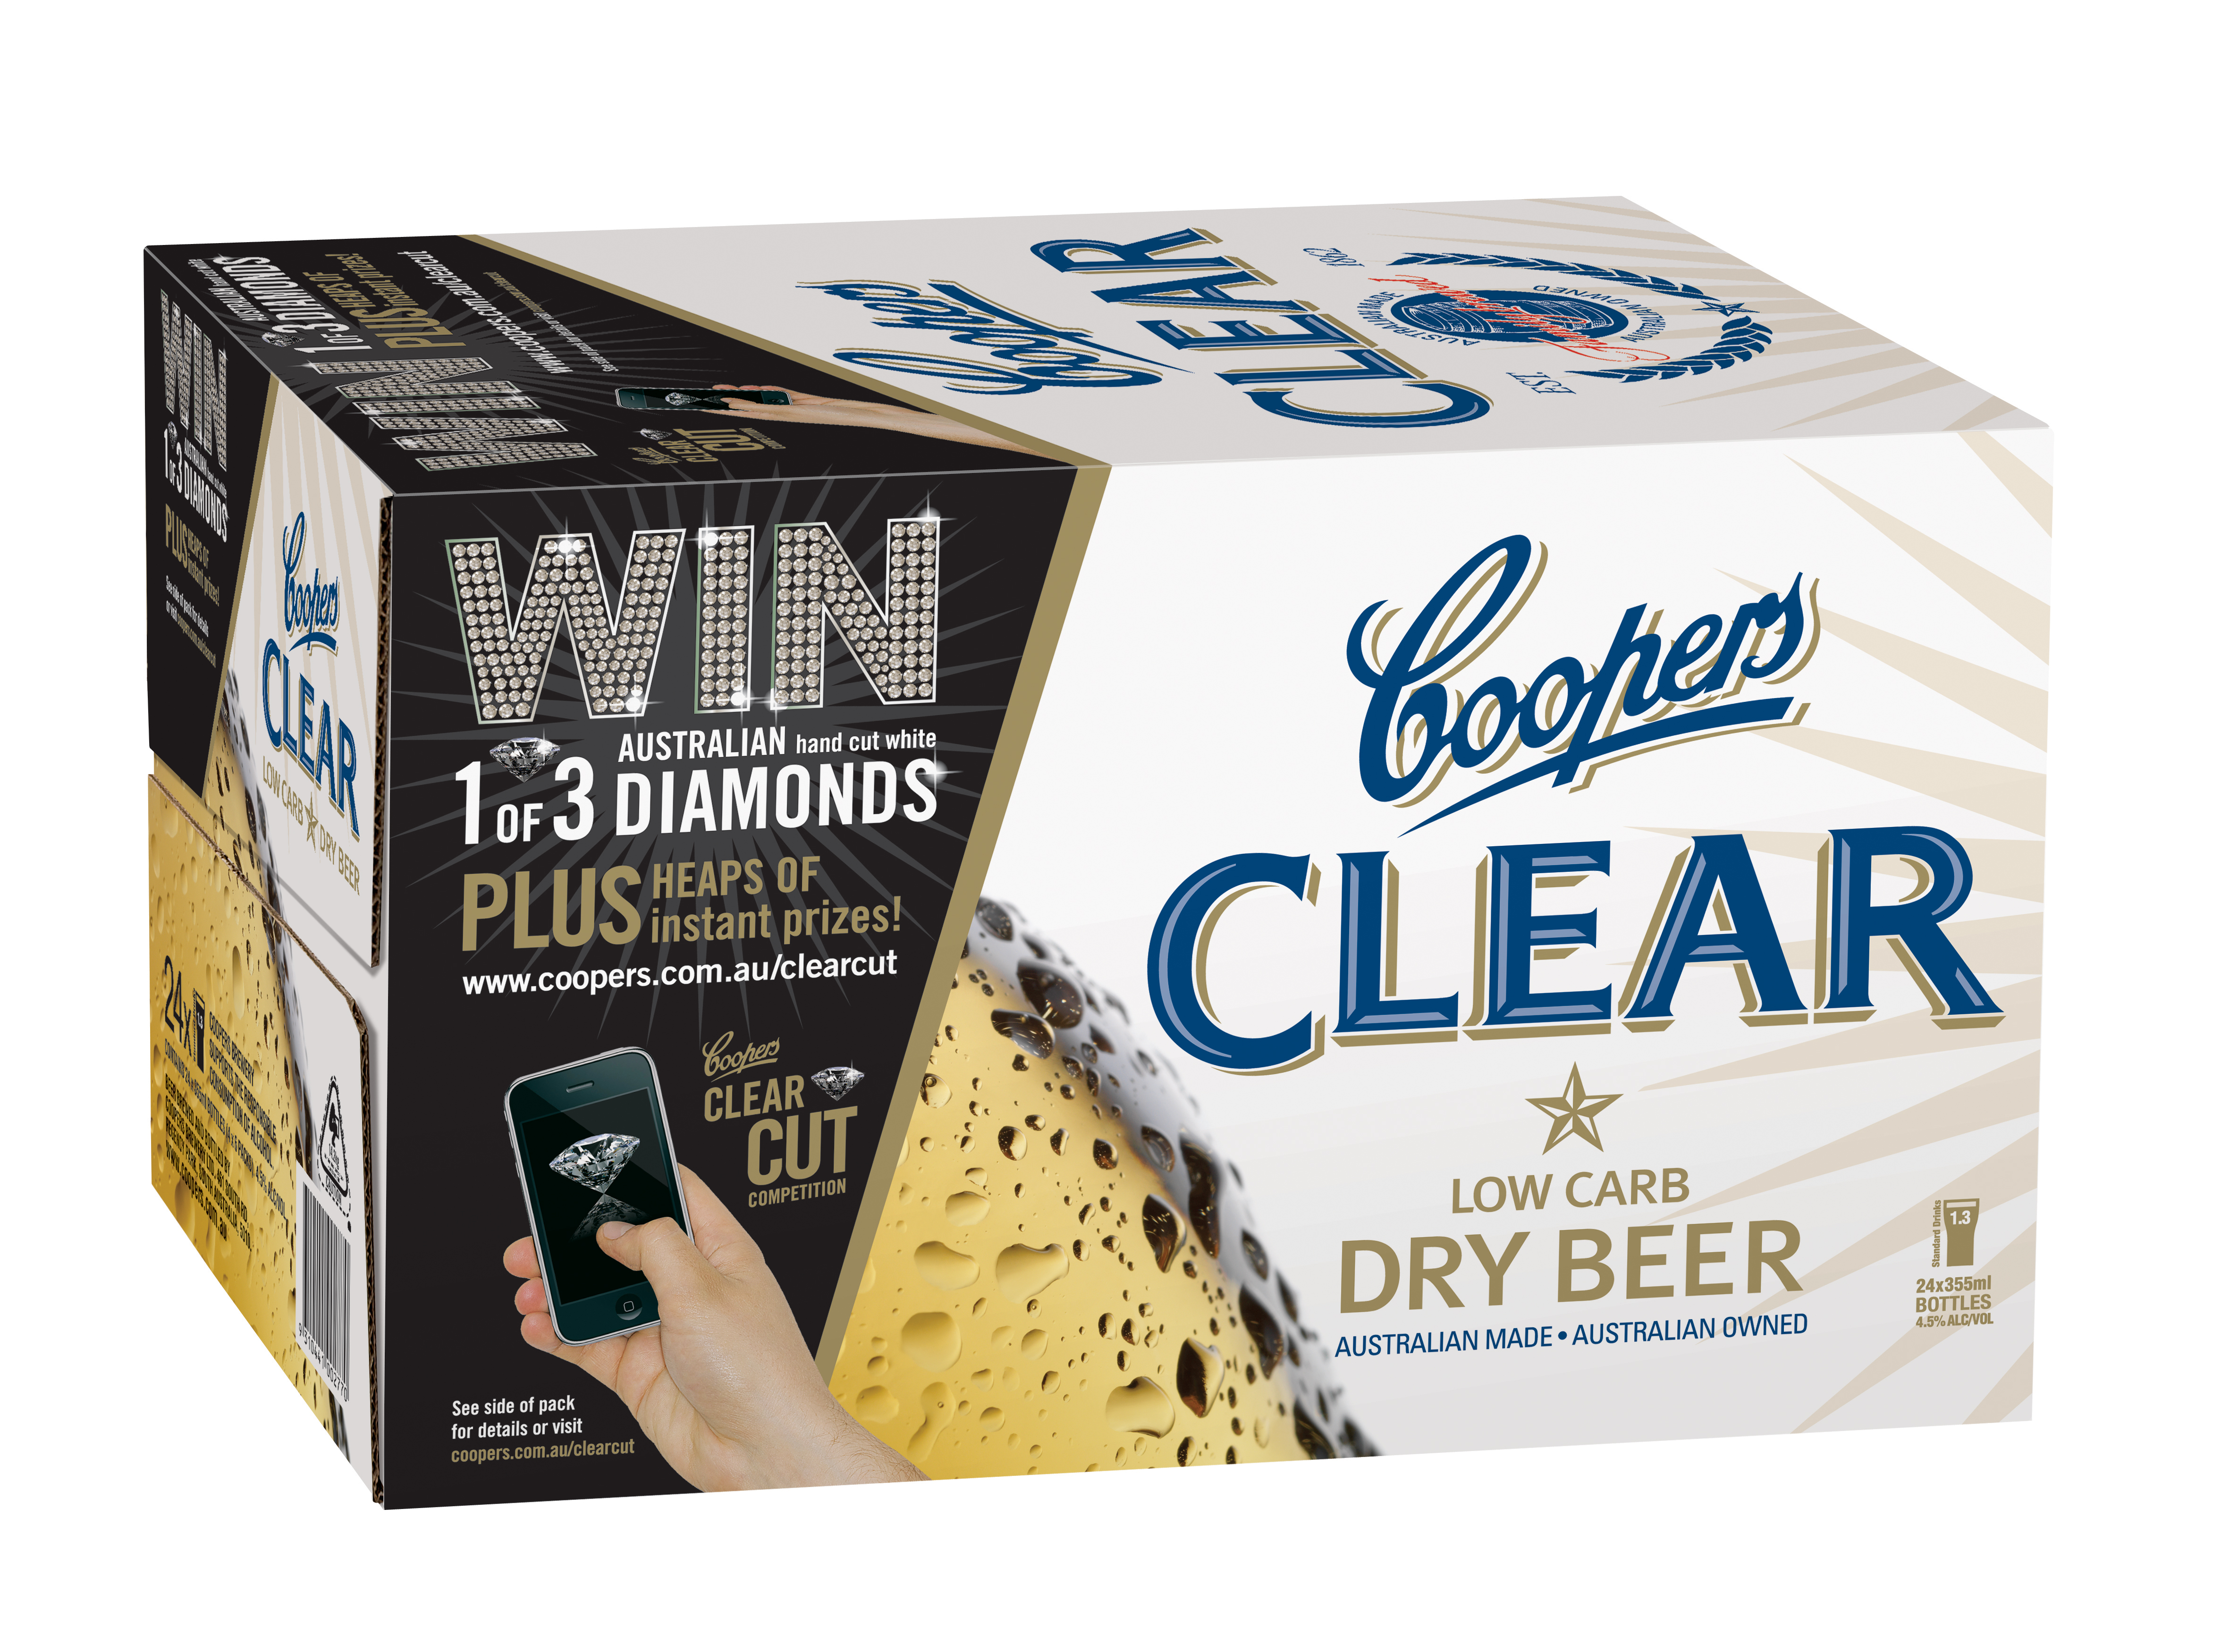 Coopers-Clear-Cut-Carton